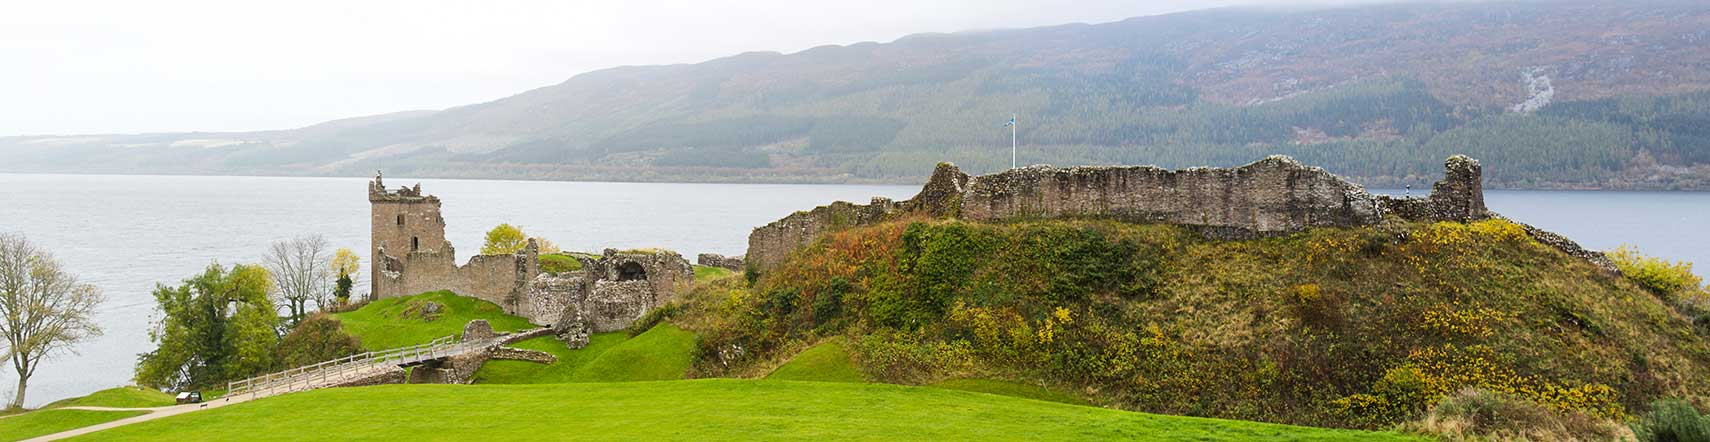 Ruins of Urquhart Castle at Loch Ness, Scotland, UK